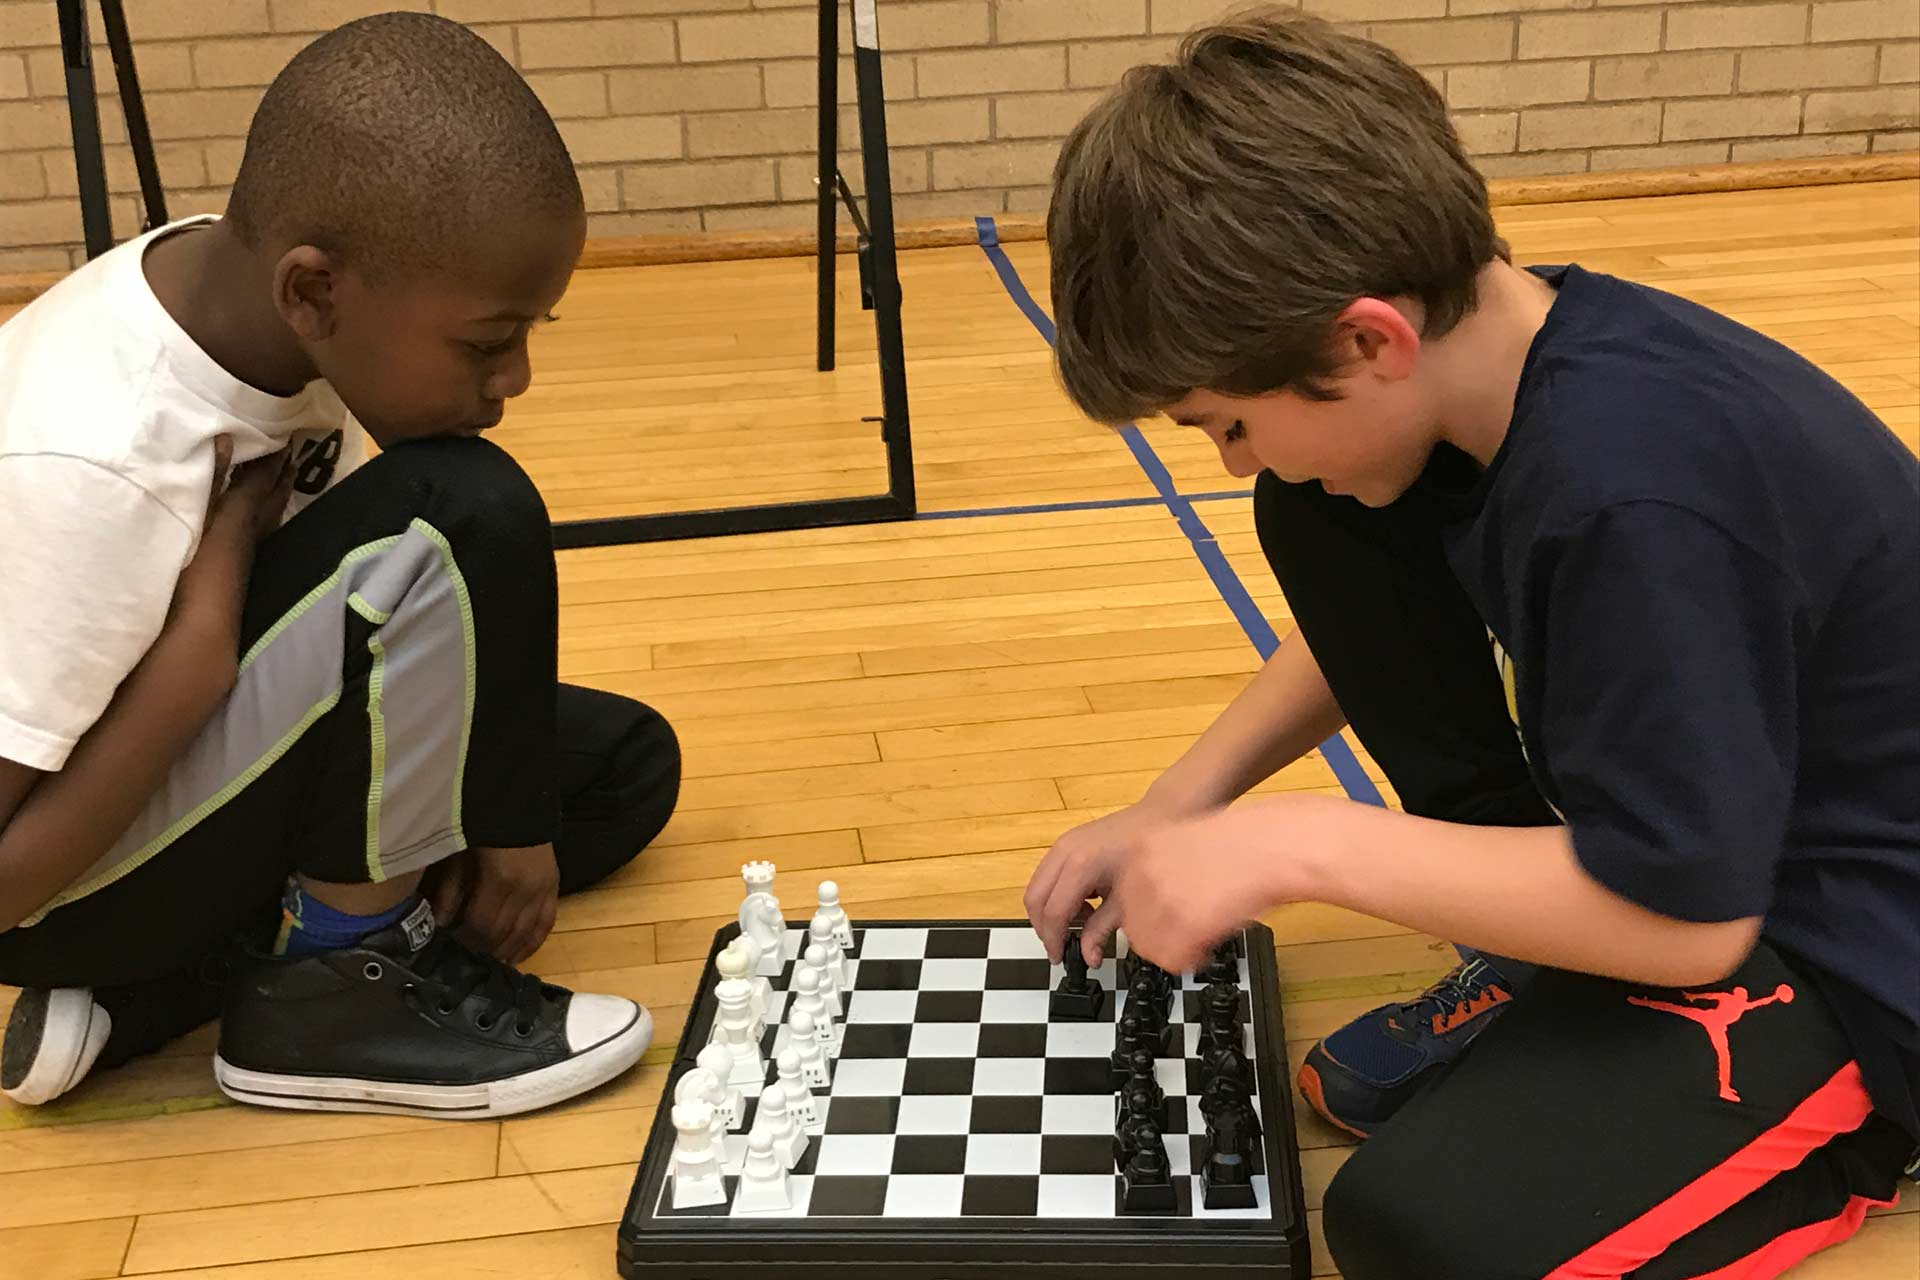 two boys playing a game of chess together